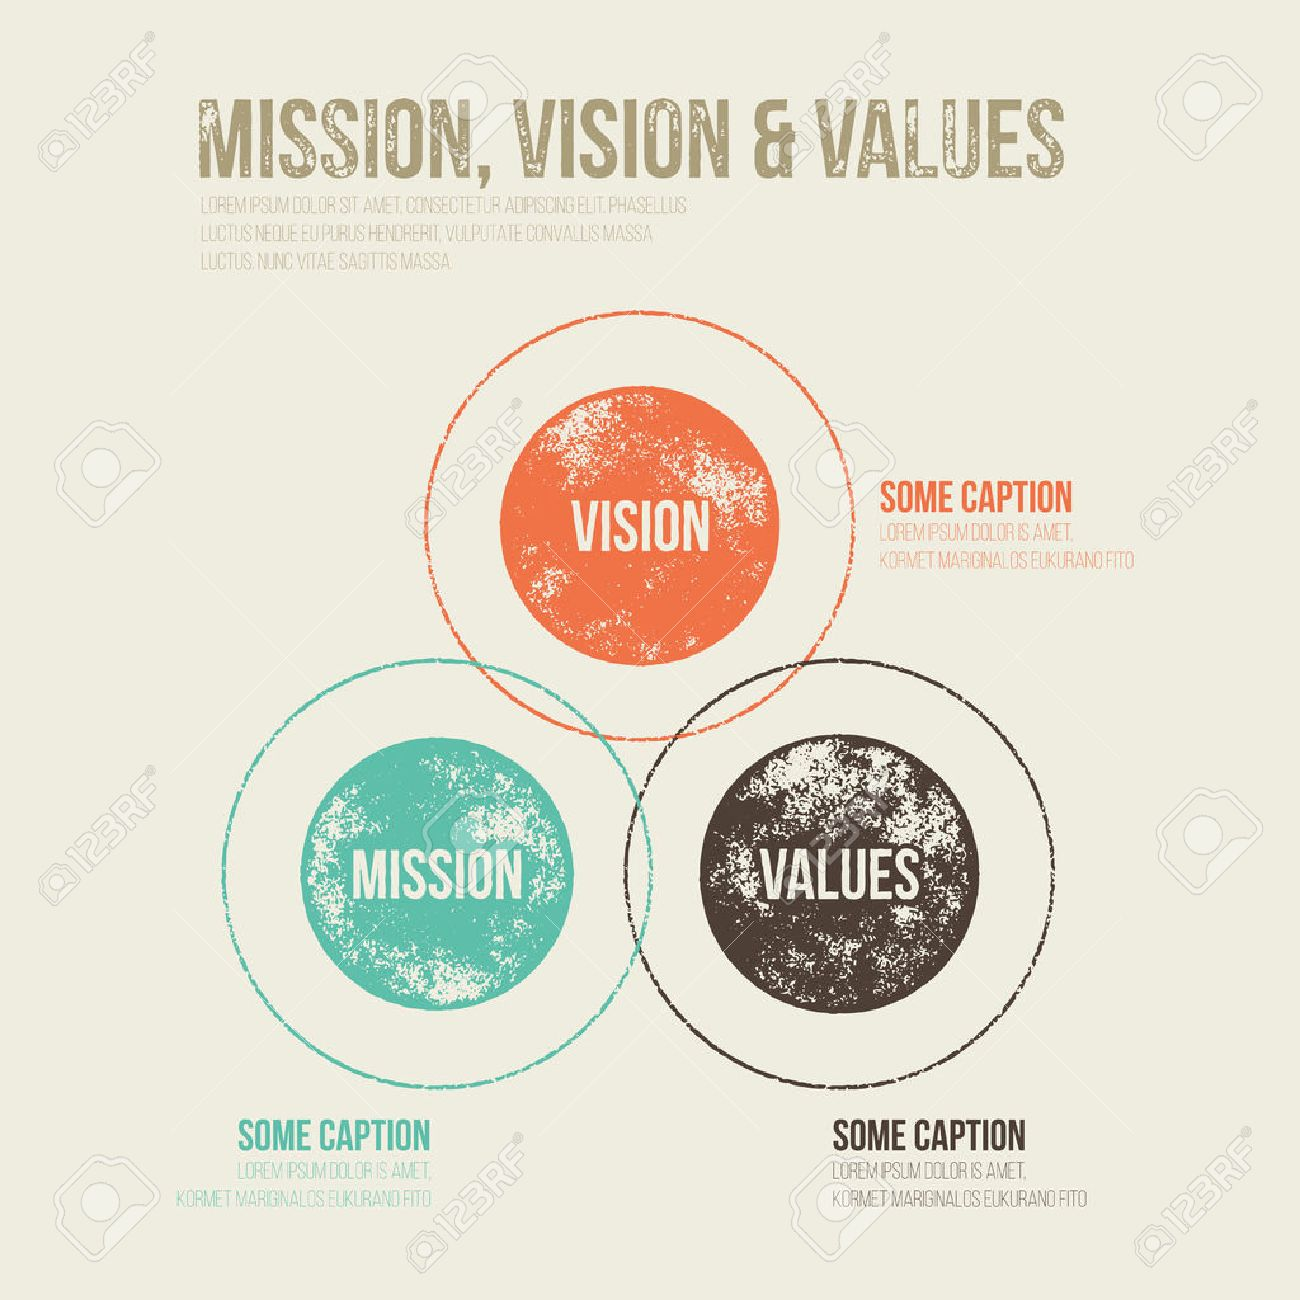 Grunge Dirty Mission, Vision and Values Diagram Schema Infographic - Vector Illustration - 39649825